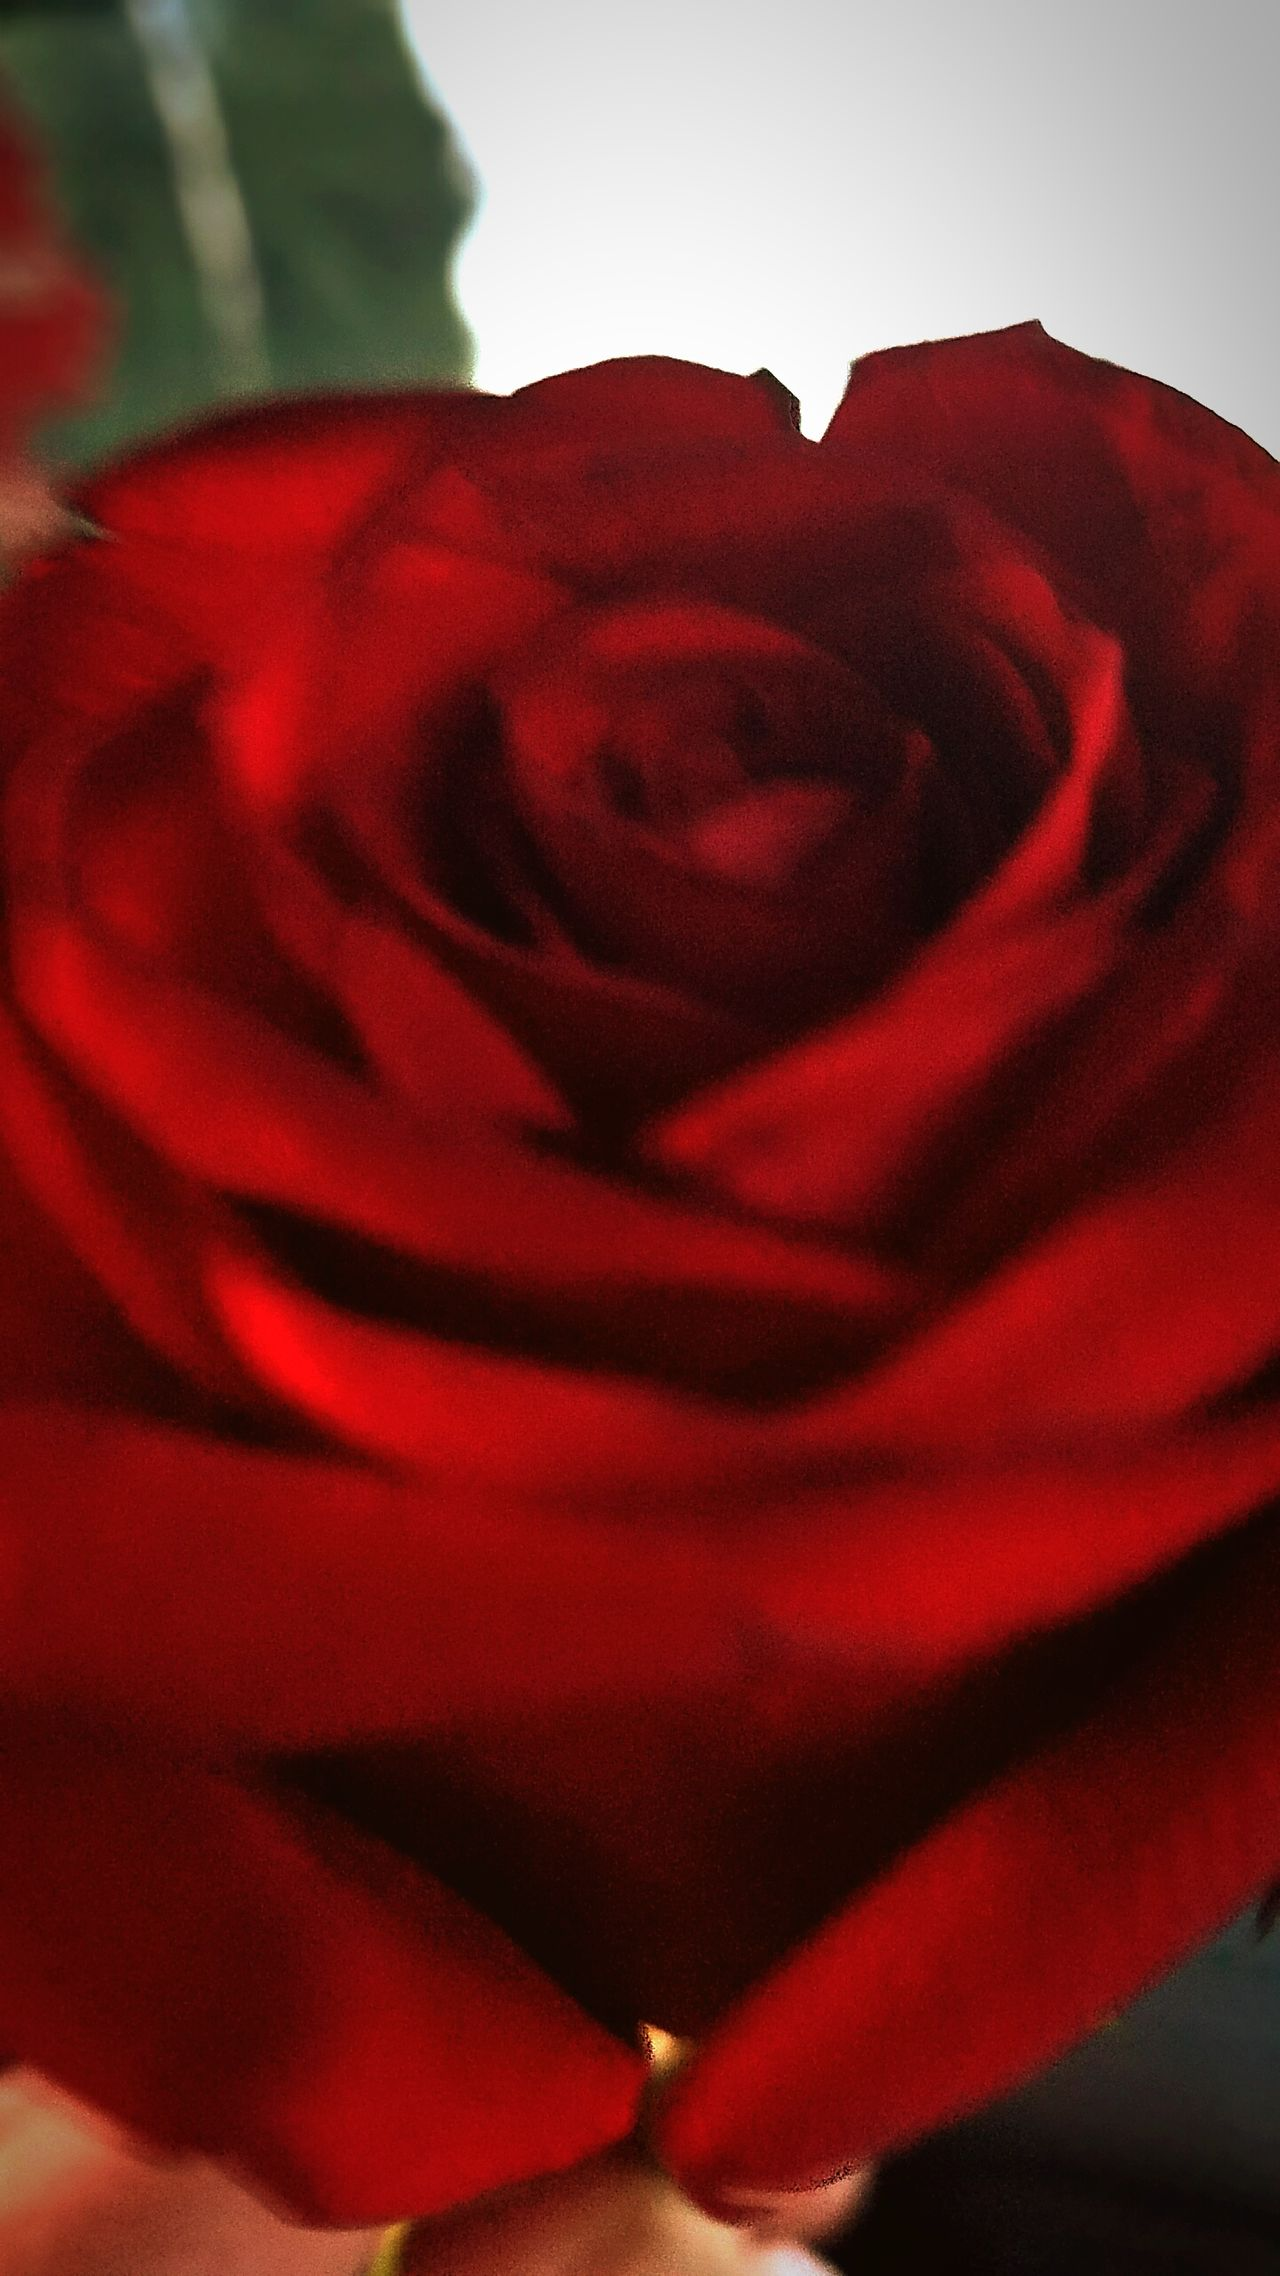 $Roses Are Red Close-up Red Petals Of Roses Stop To Smell The Roses Shadowing Shades Of Red Blush Rosy Rosé Flower Gifts Of Nature